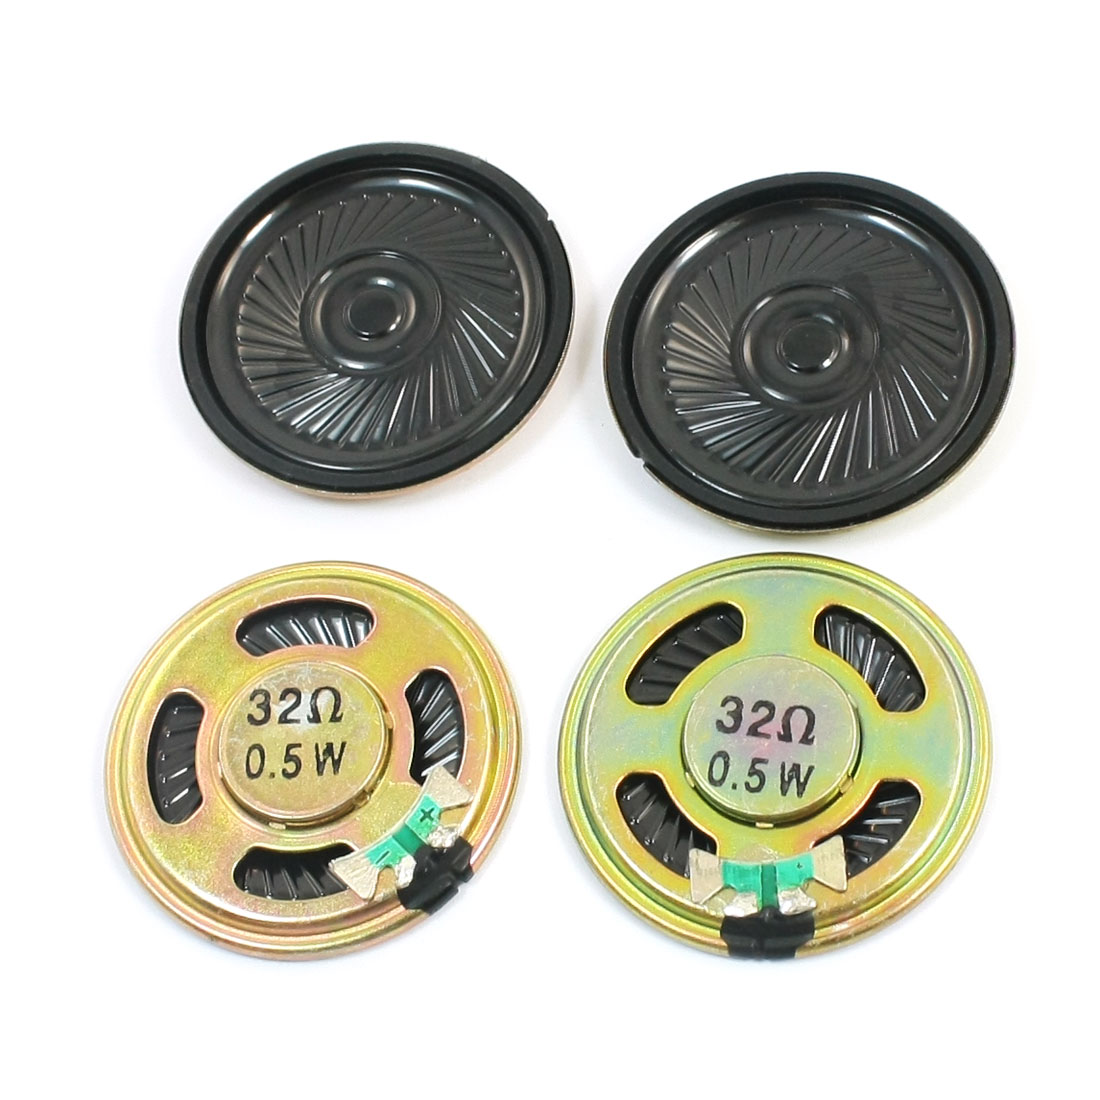 Music Player 40mm Dia Round Magnet Sealed Round Metal Mini Speaker Loudspeaker 32 Ohm 0.5W 4Pcs